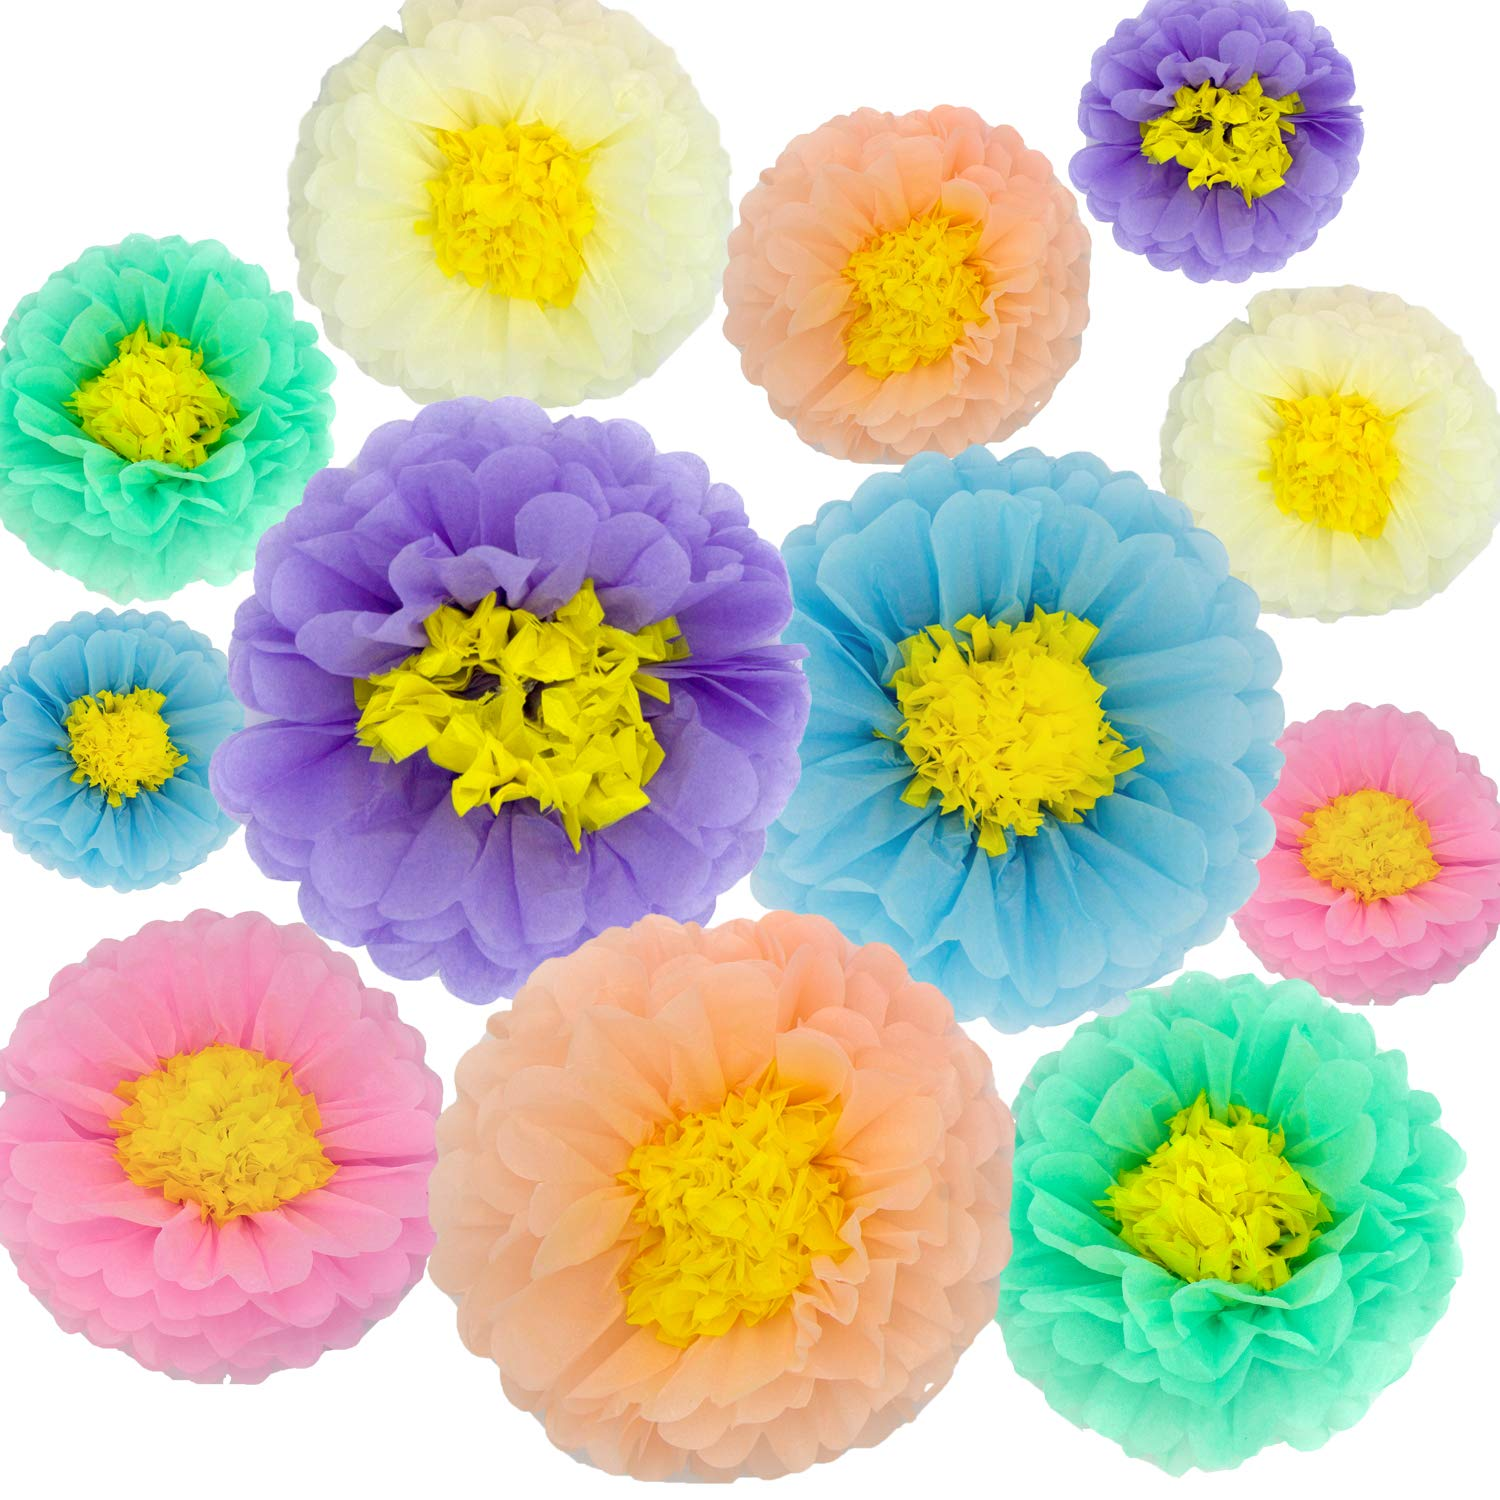 Paper Flowers Decorations,12 Pcs Tissue Paper Flower DIY Crafting for Wedding Backdrop Nursery Wall Baby Shower Decoration